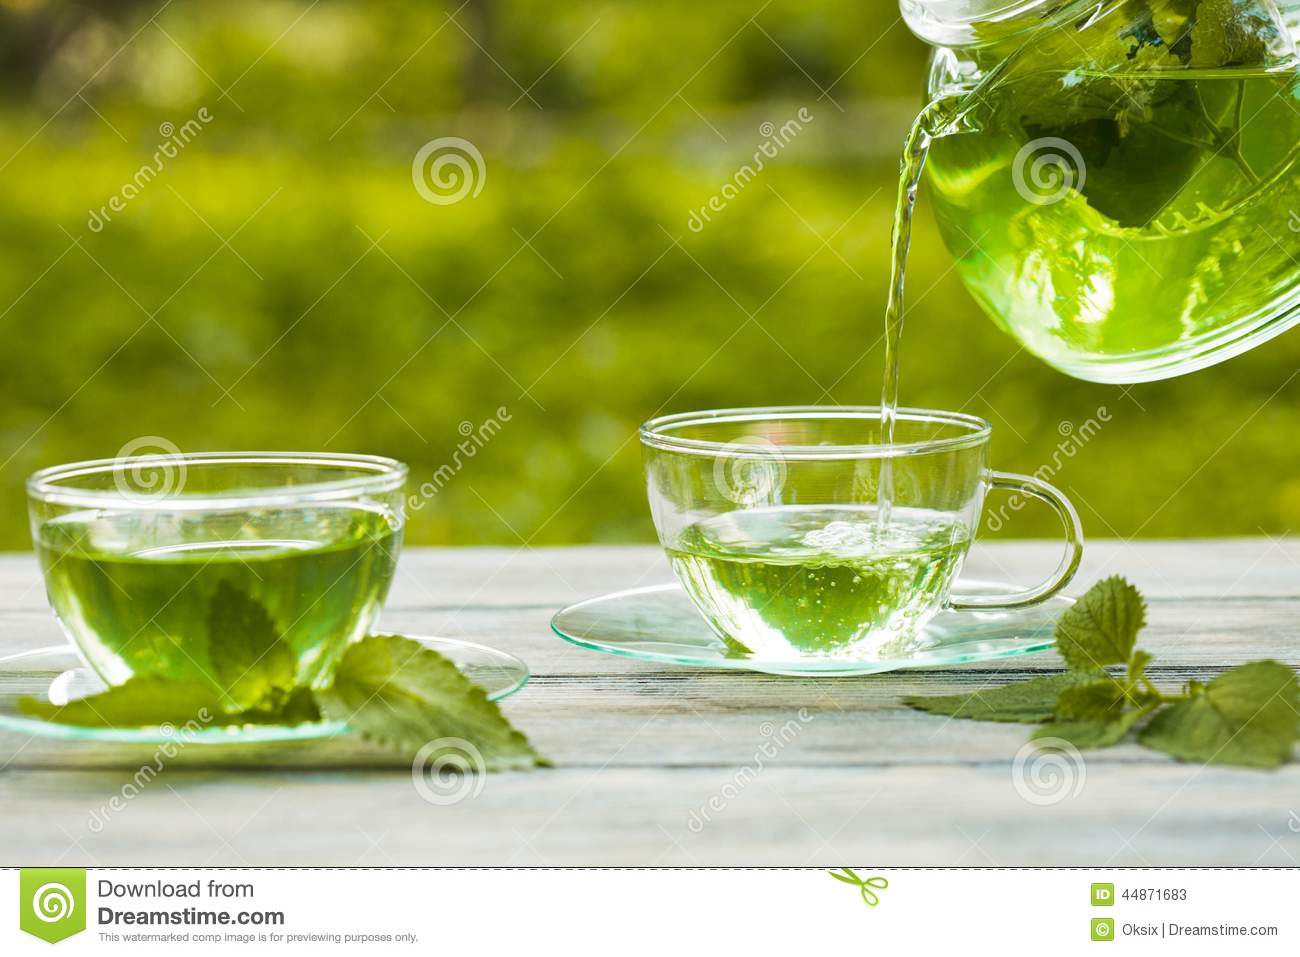 Is it possible to drink melissa tea during pregnancy 64